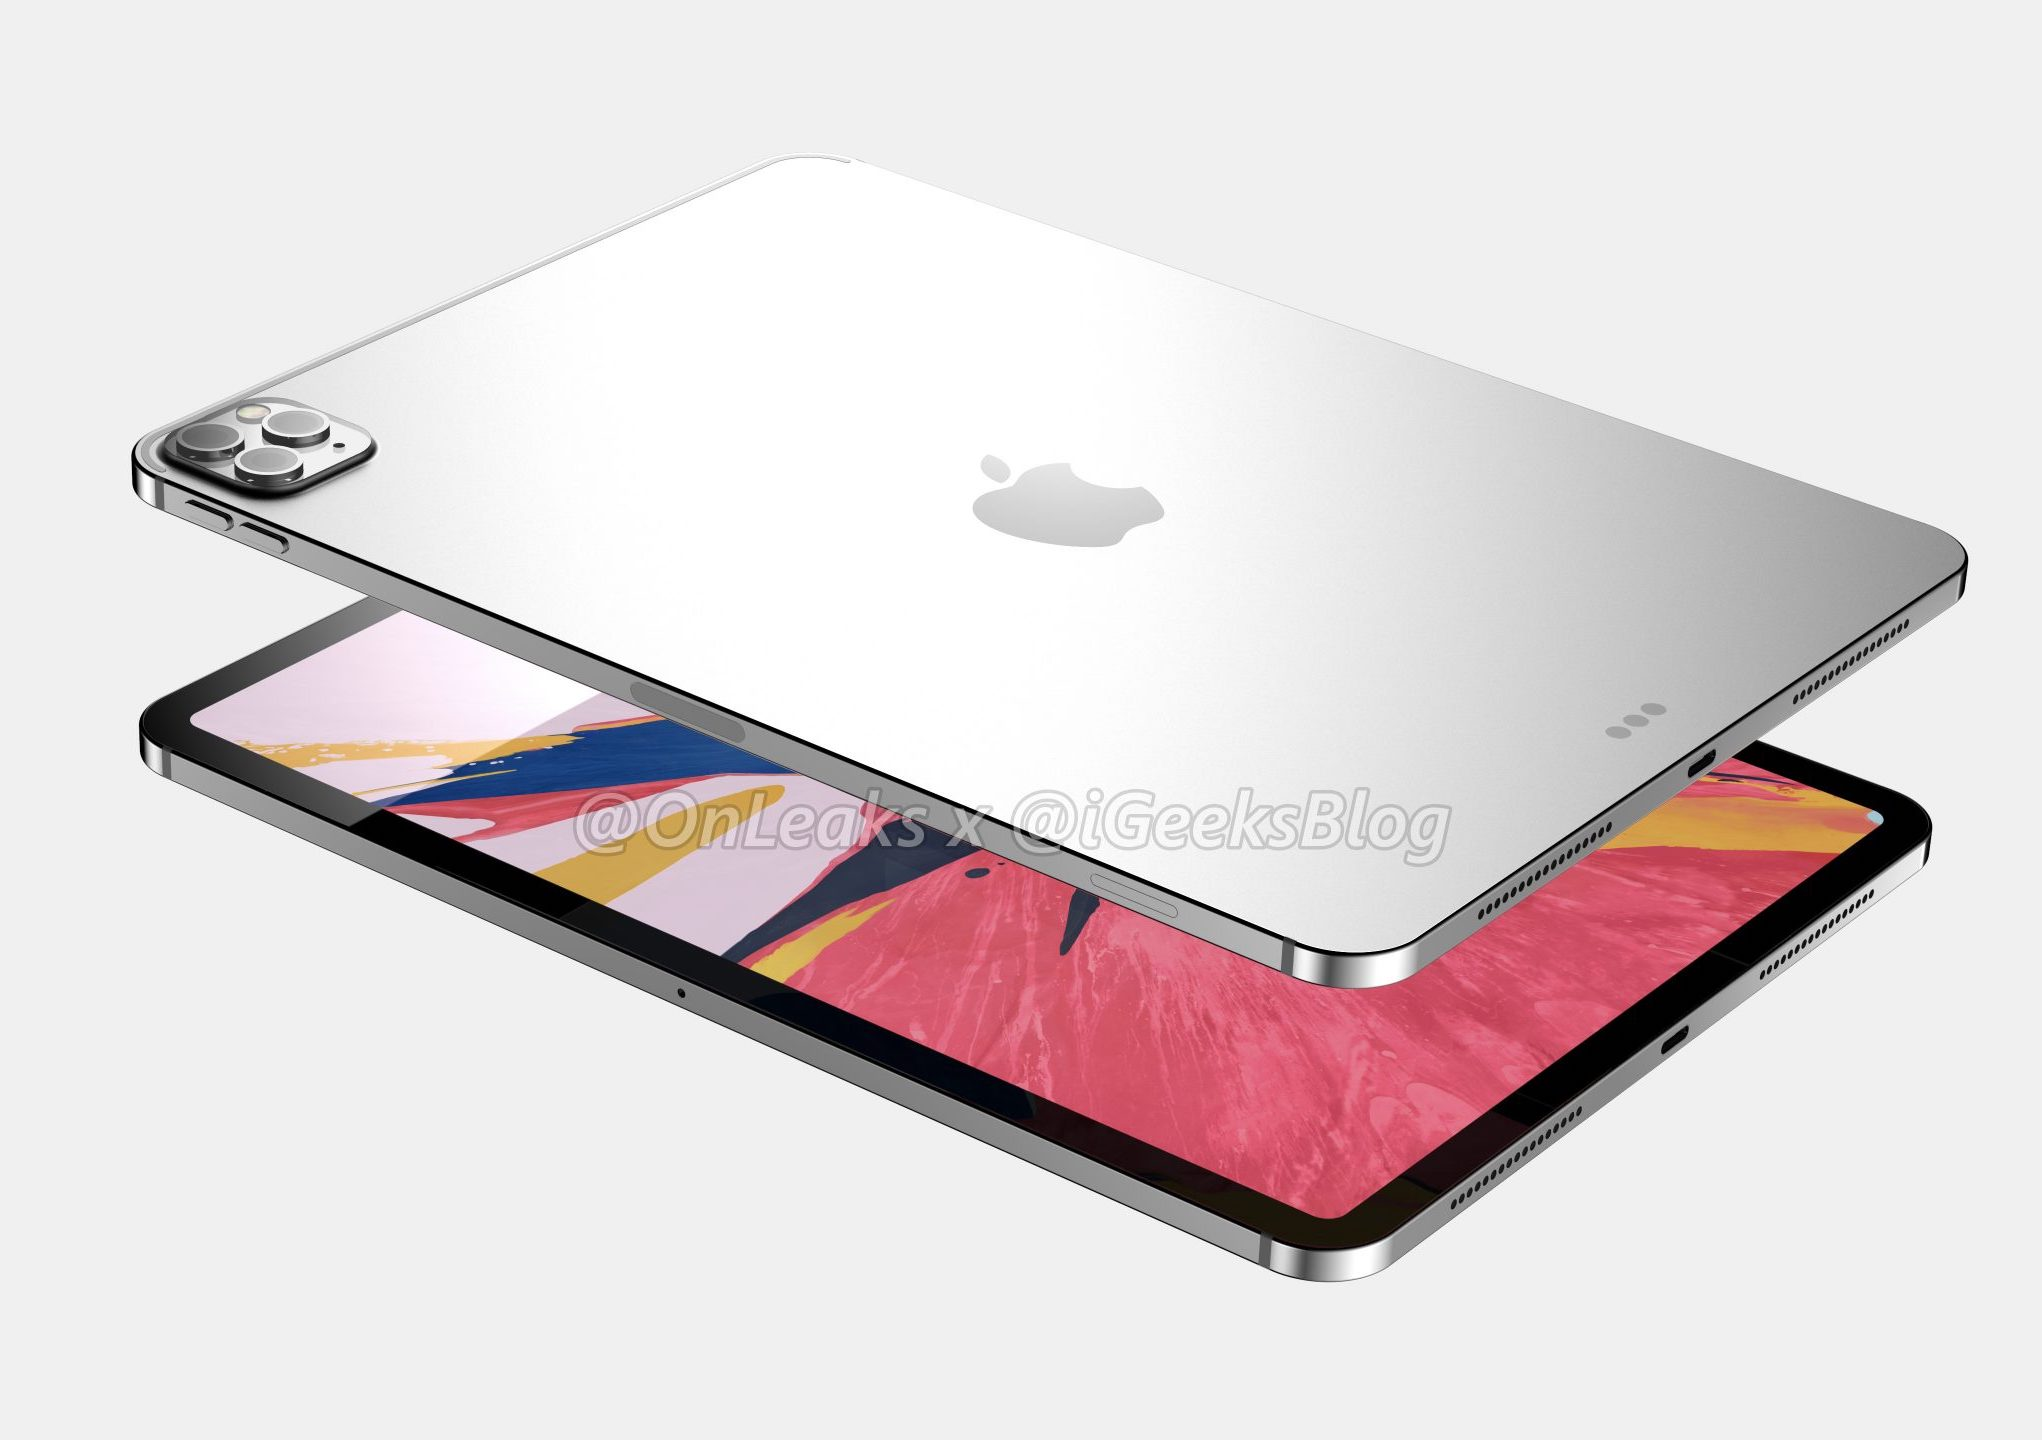 2020 11 Inch Ipad Pro With Metal Back